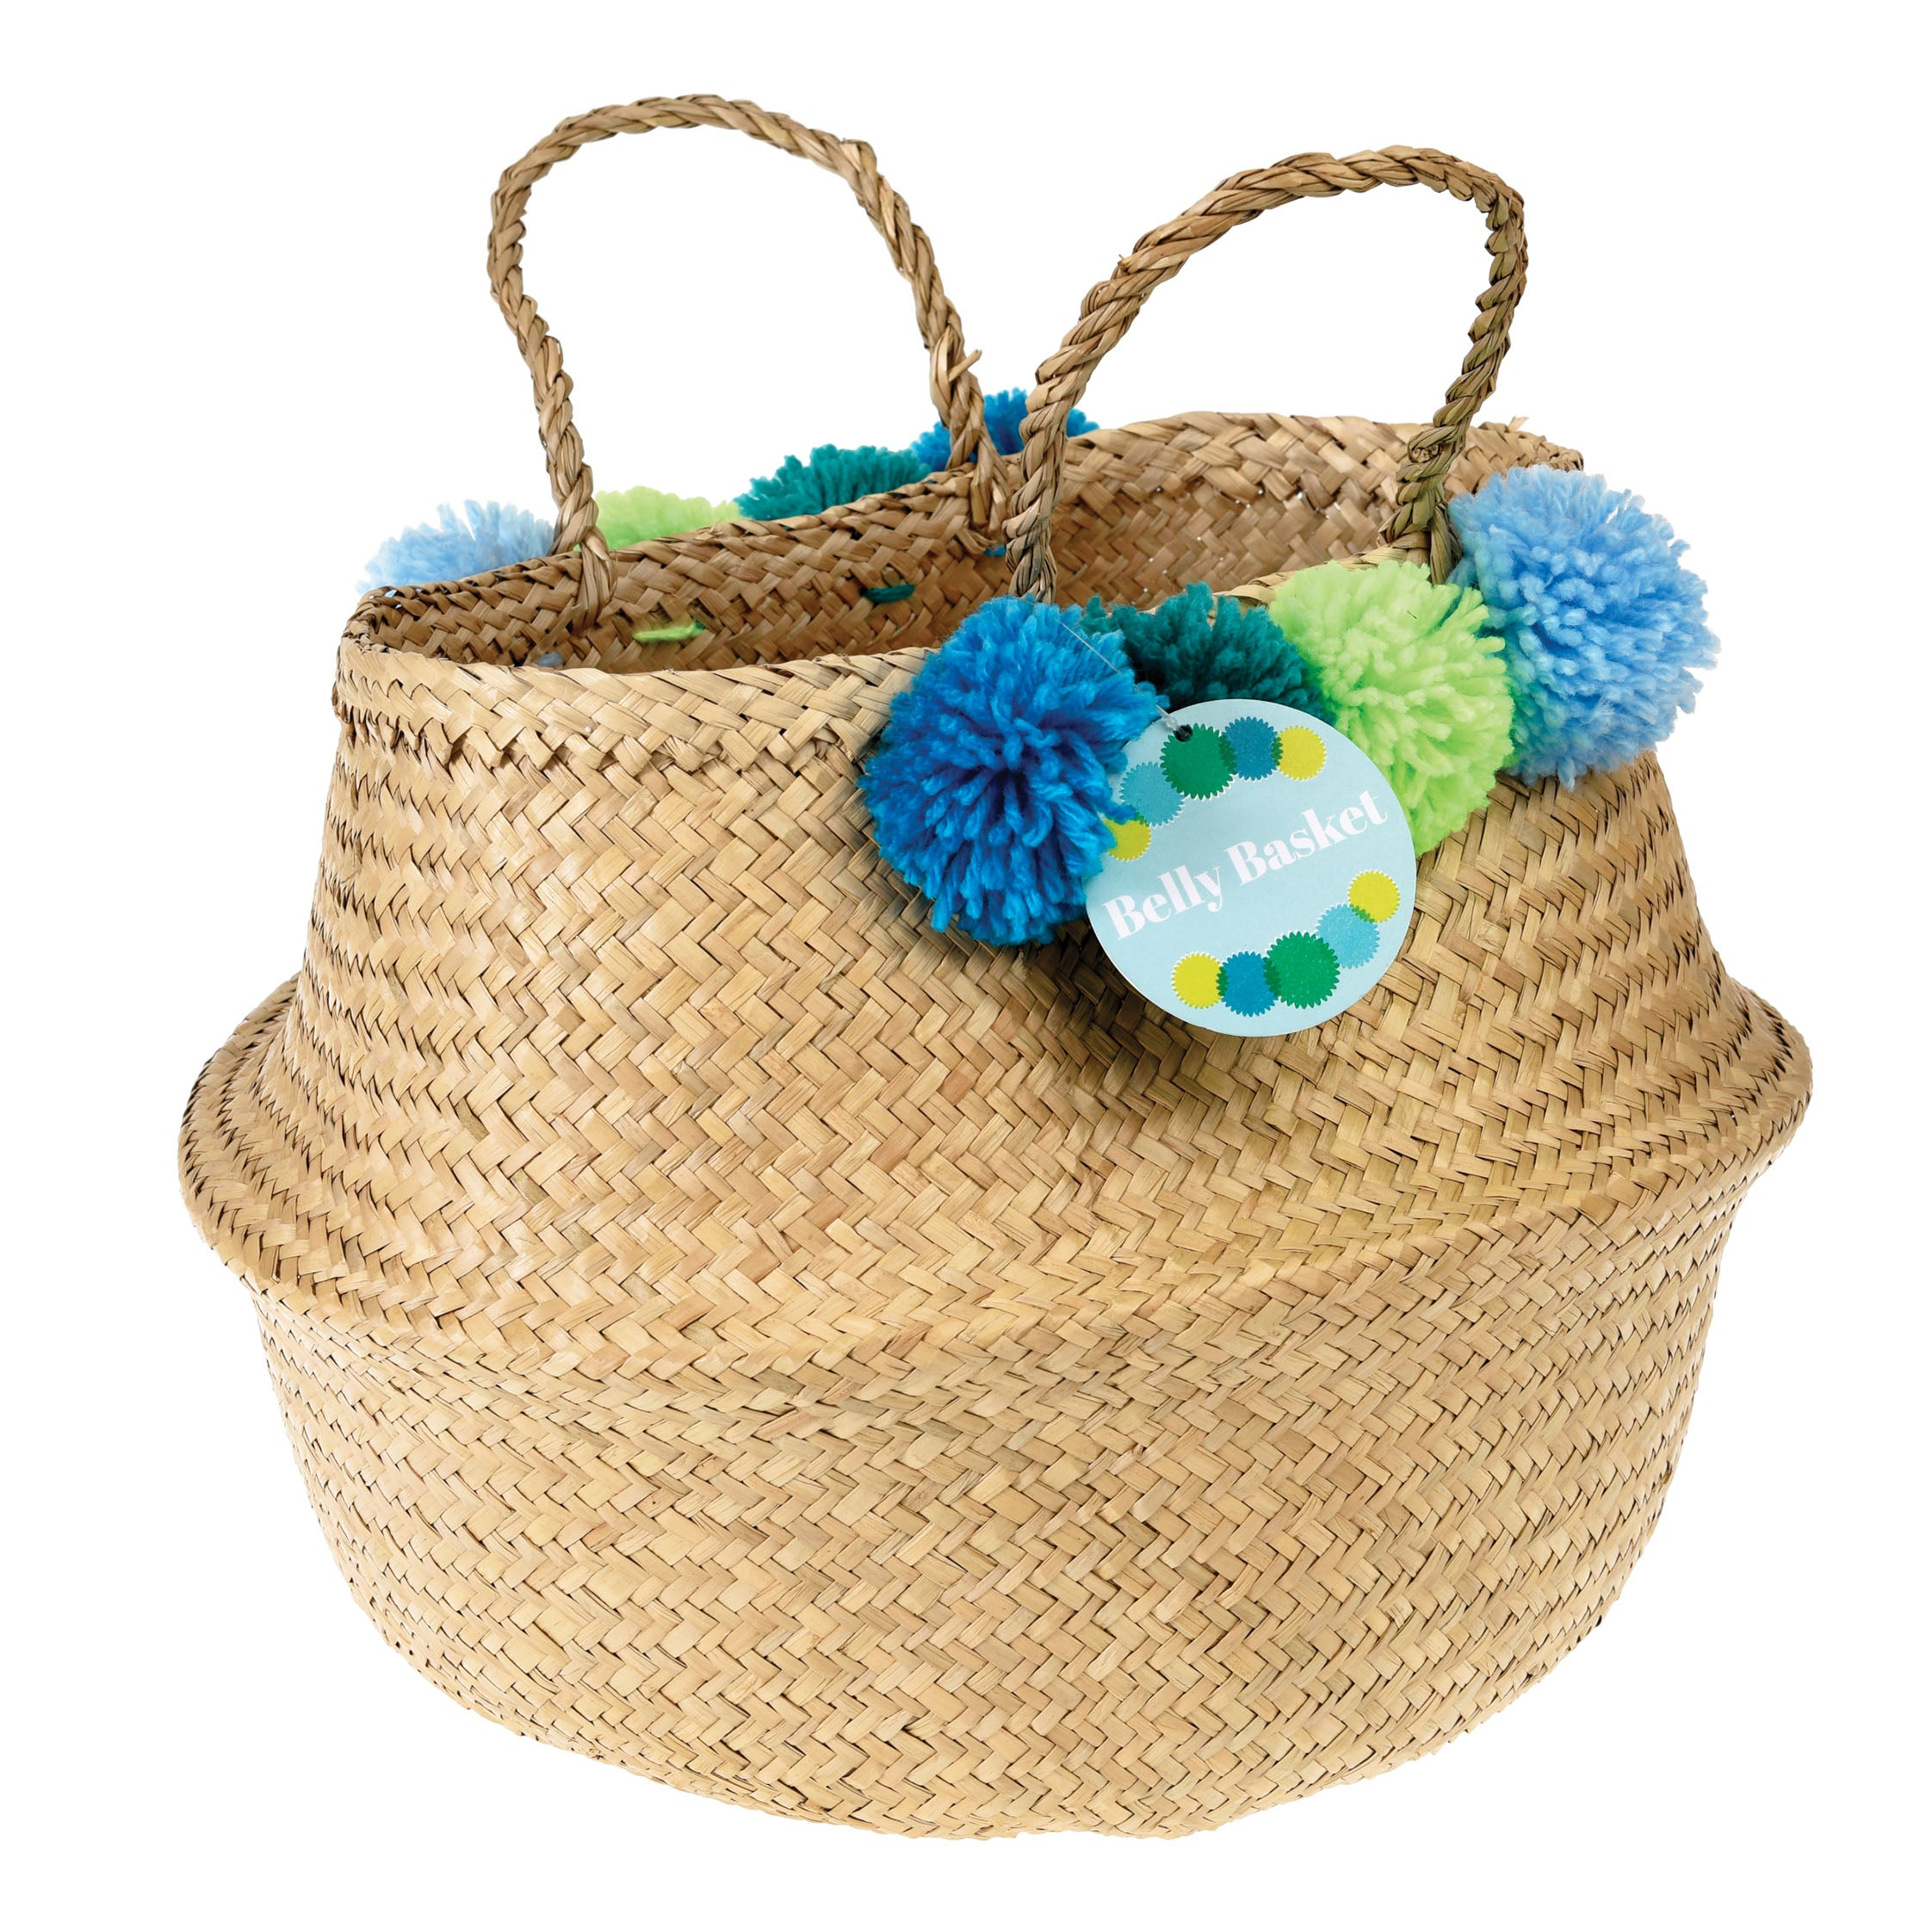 Basket with blue and green pompoms and handles